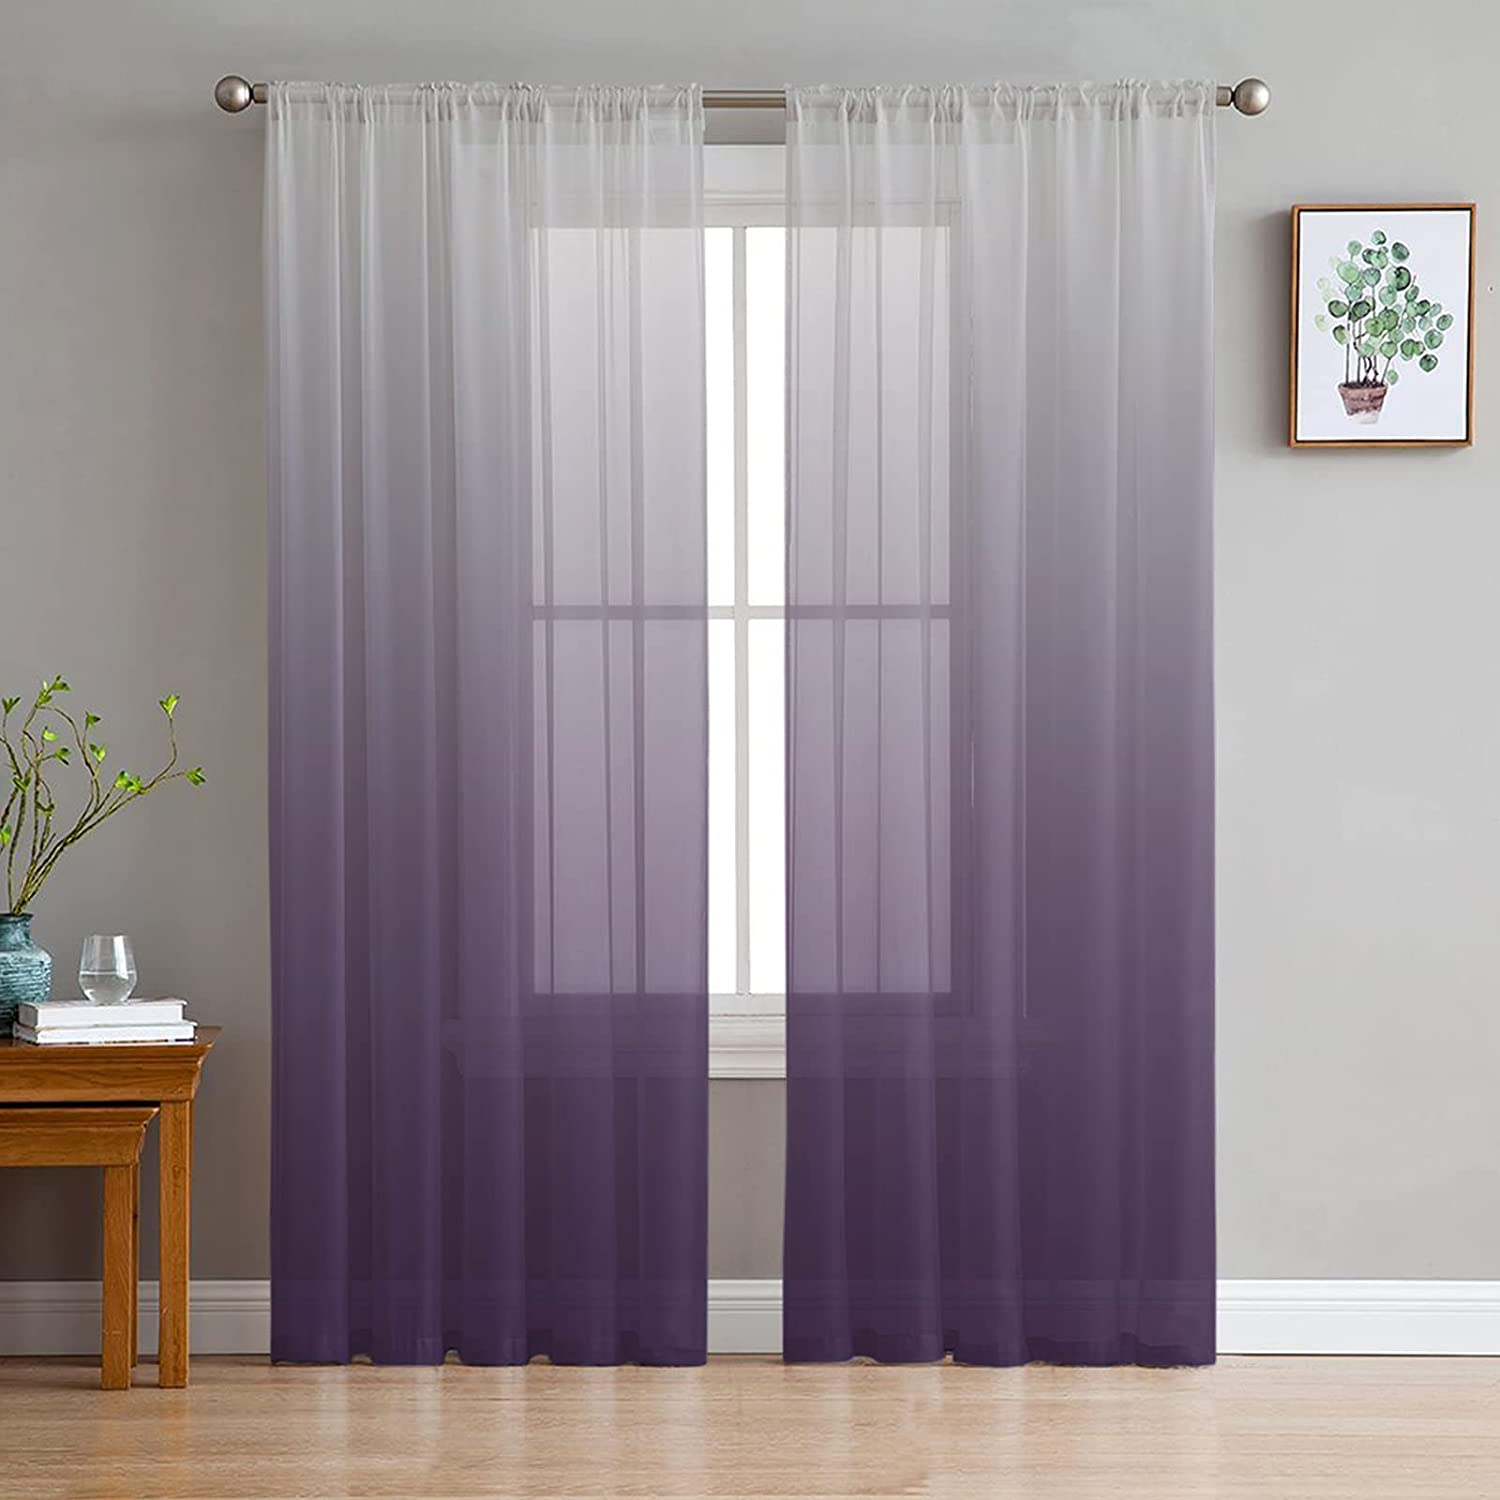 Printed House Discount is also underway Sheer Curtains Panels Rod Selling rankings Semi Pocket Voile